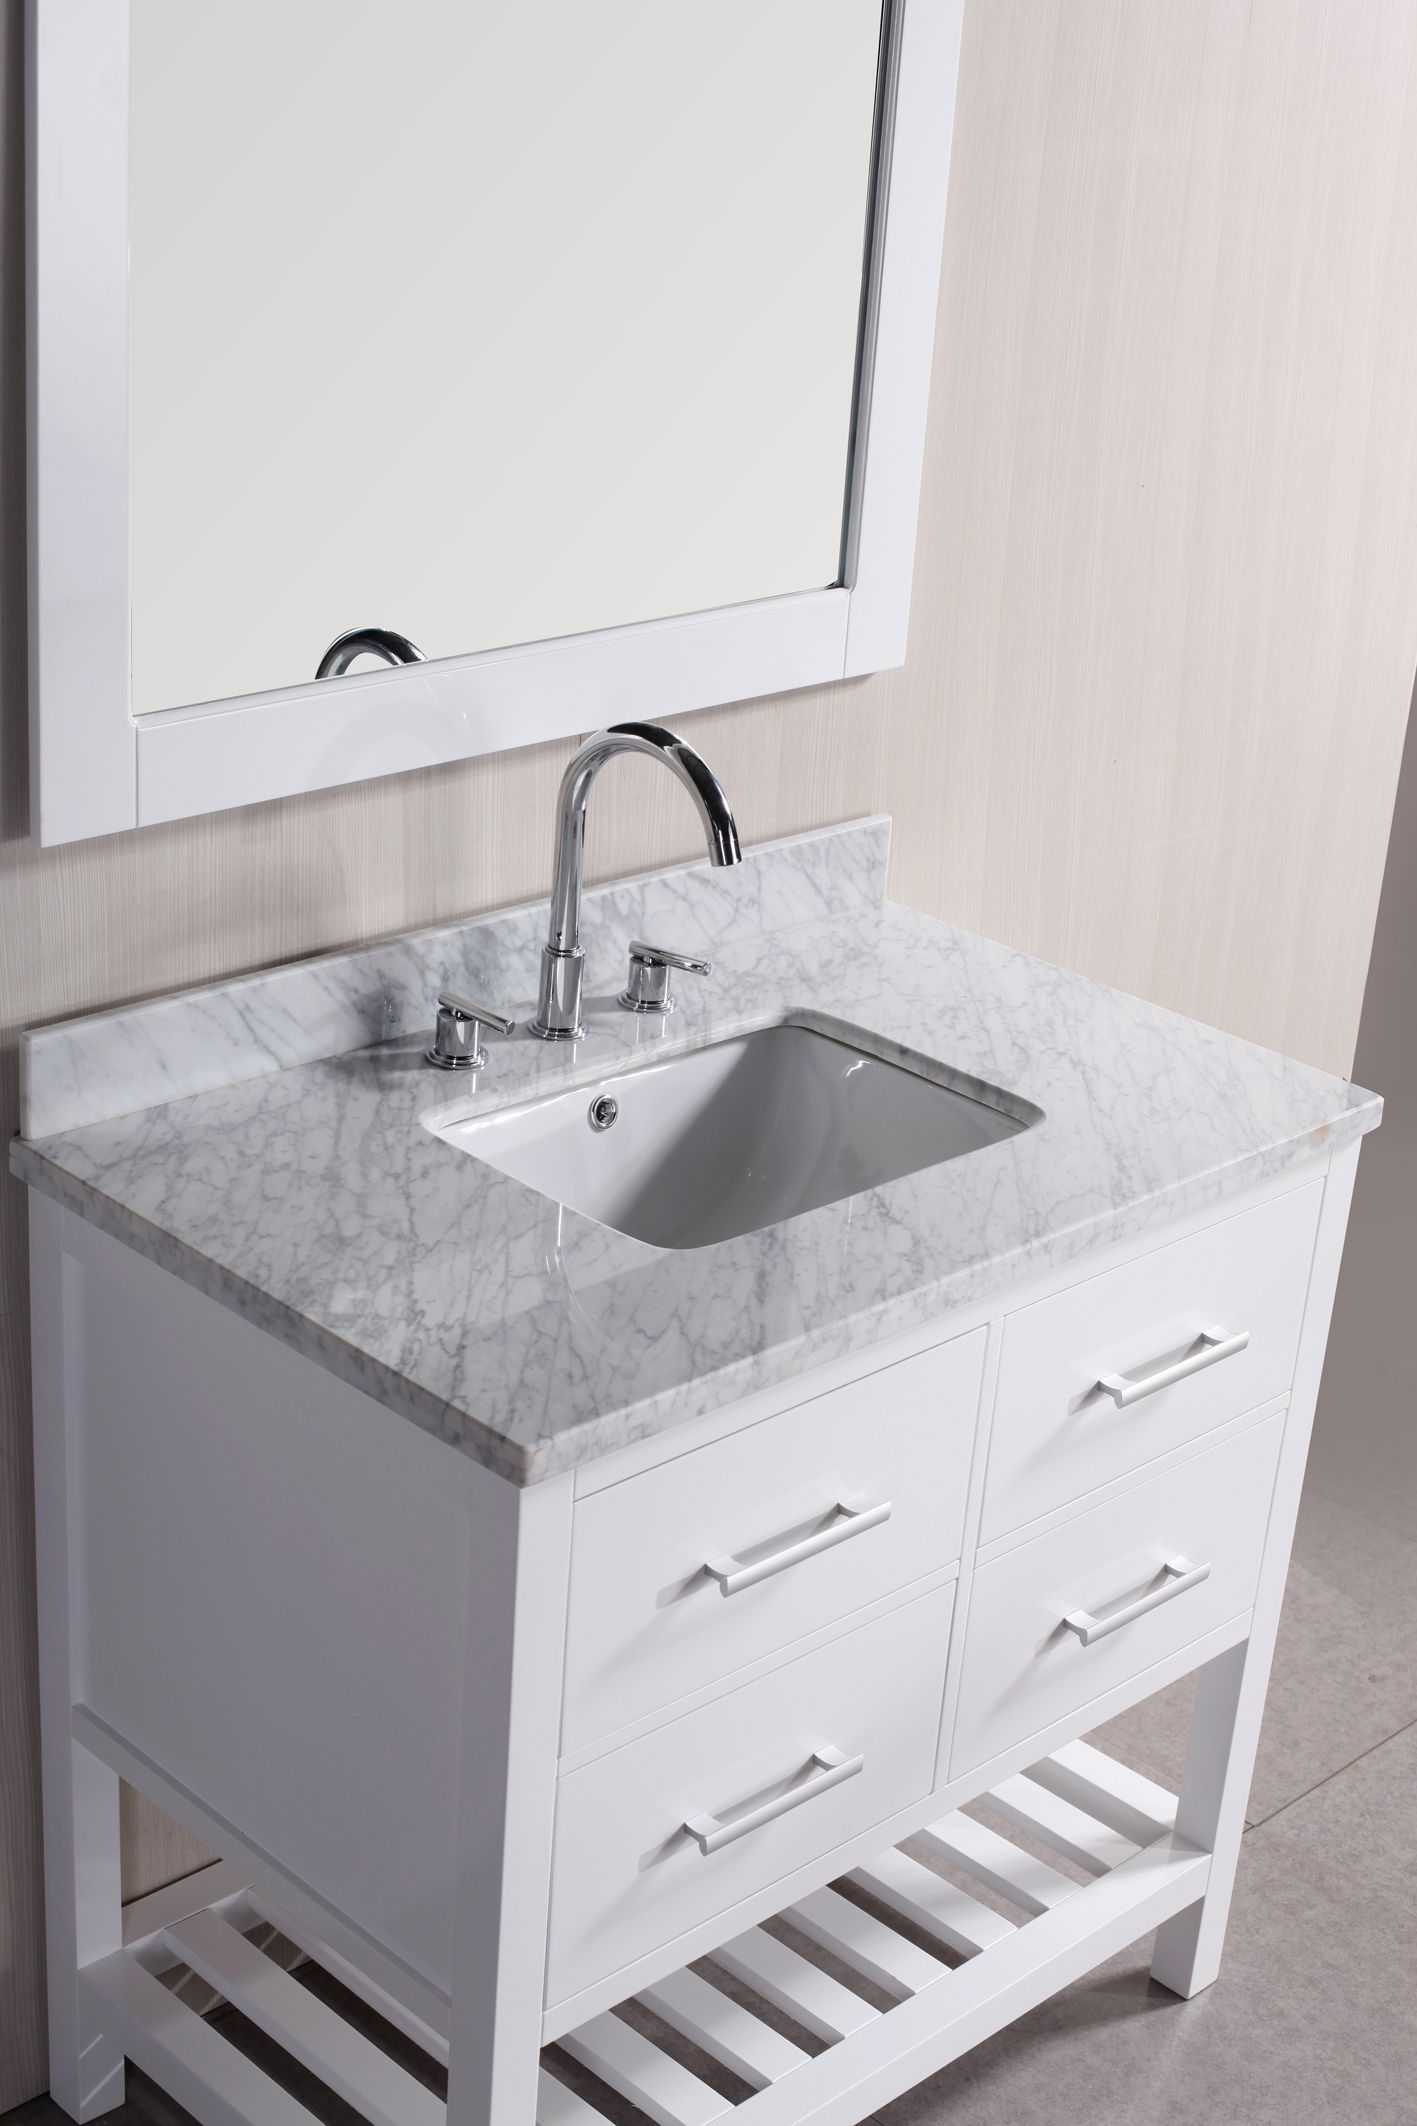 small bathroom vanities without tops | Bad | Pinterest | Small ...